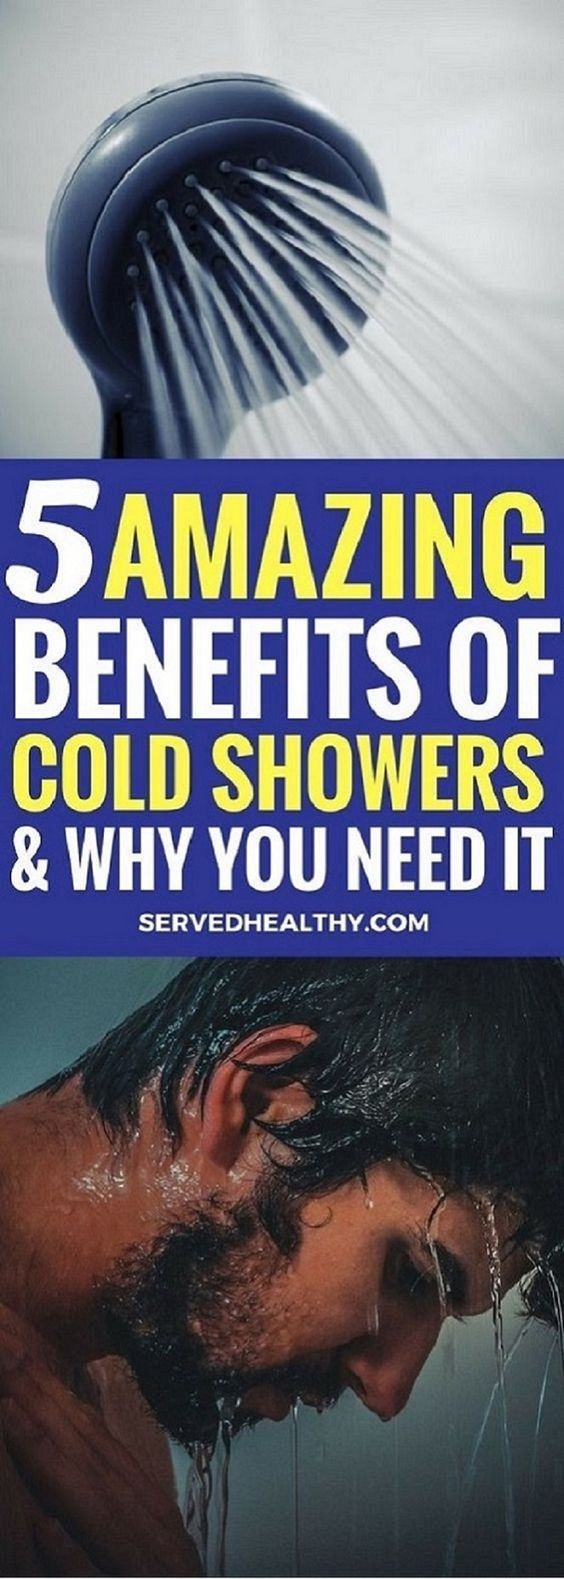 5 EPIC BENEFITS OF COLD SHOWERS AND WHY YOU SHOULD TRY IT  #lifestyle  #fitness